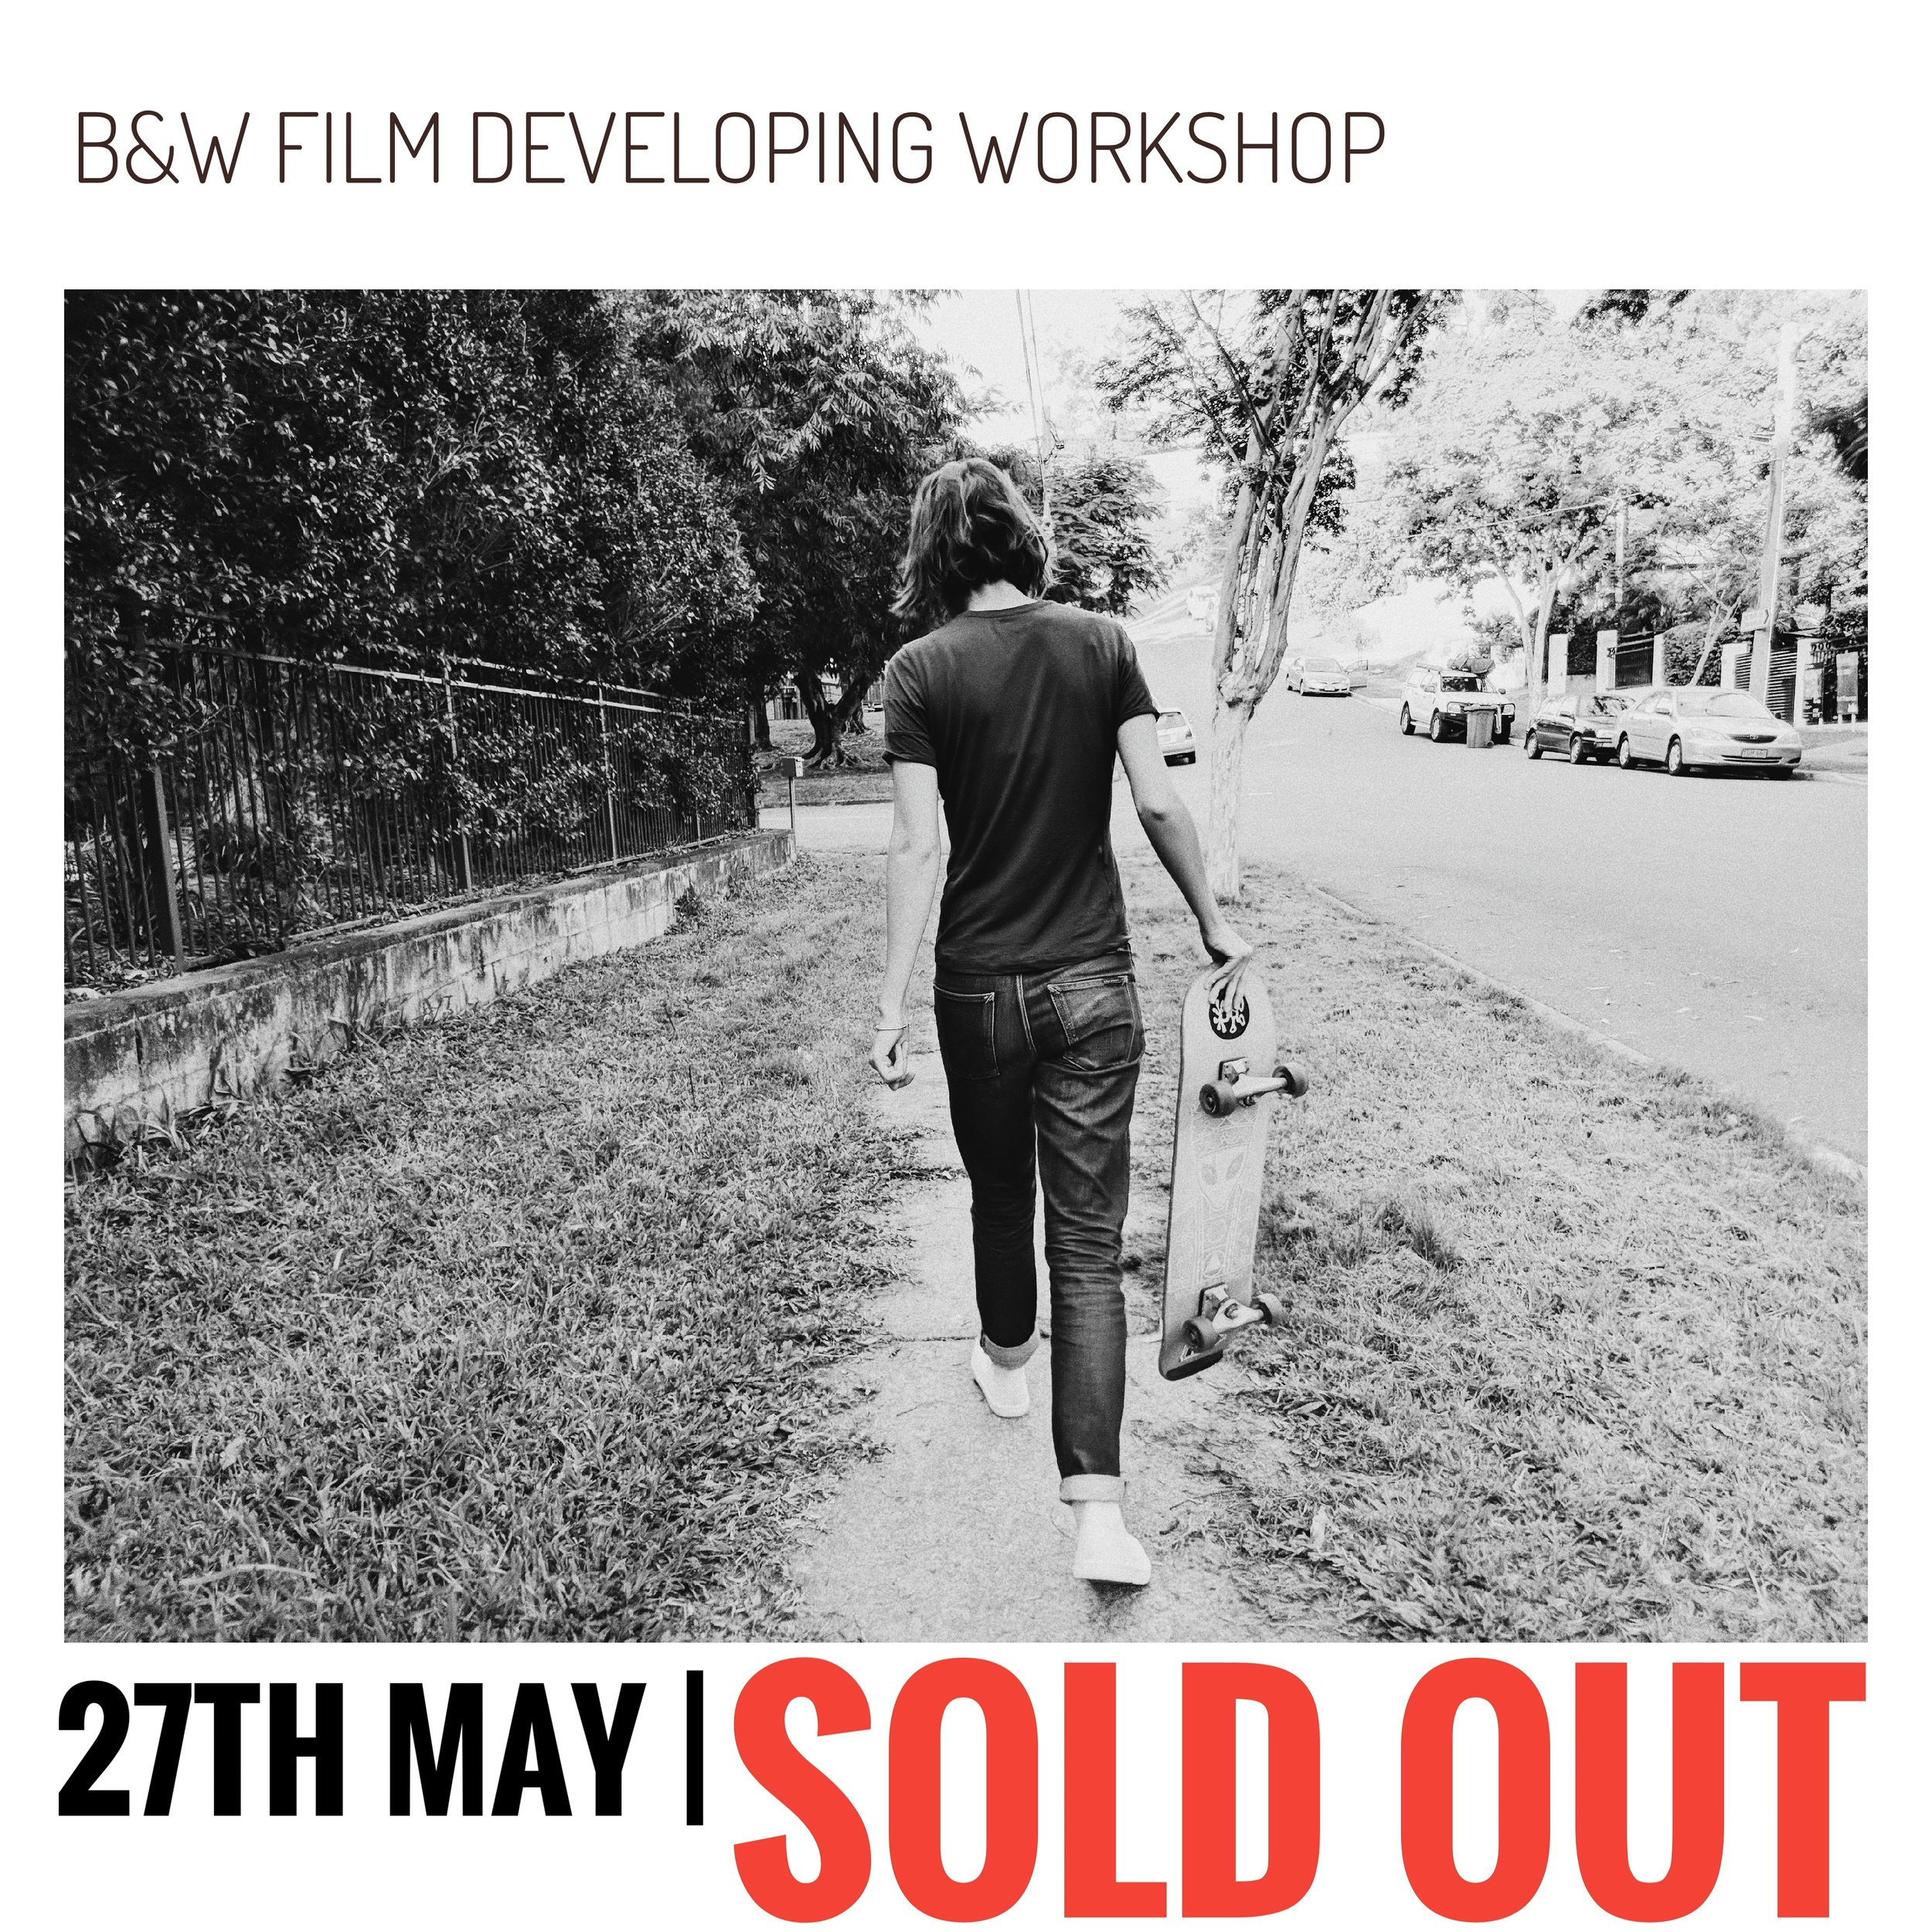 FILM DEVELOPINGWORKSHOP - Learn how to 'Bulk Roll' your own 35mm film, 'Develop and Scan' your film ready for your PC or Mac and software of choiceDATE: Sunday 27th MayCOST: $89